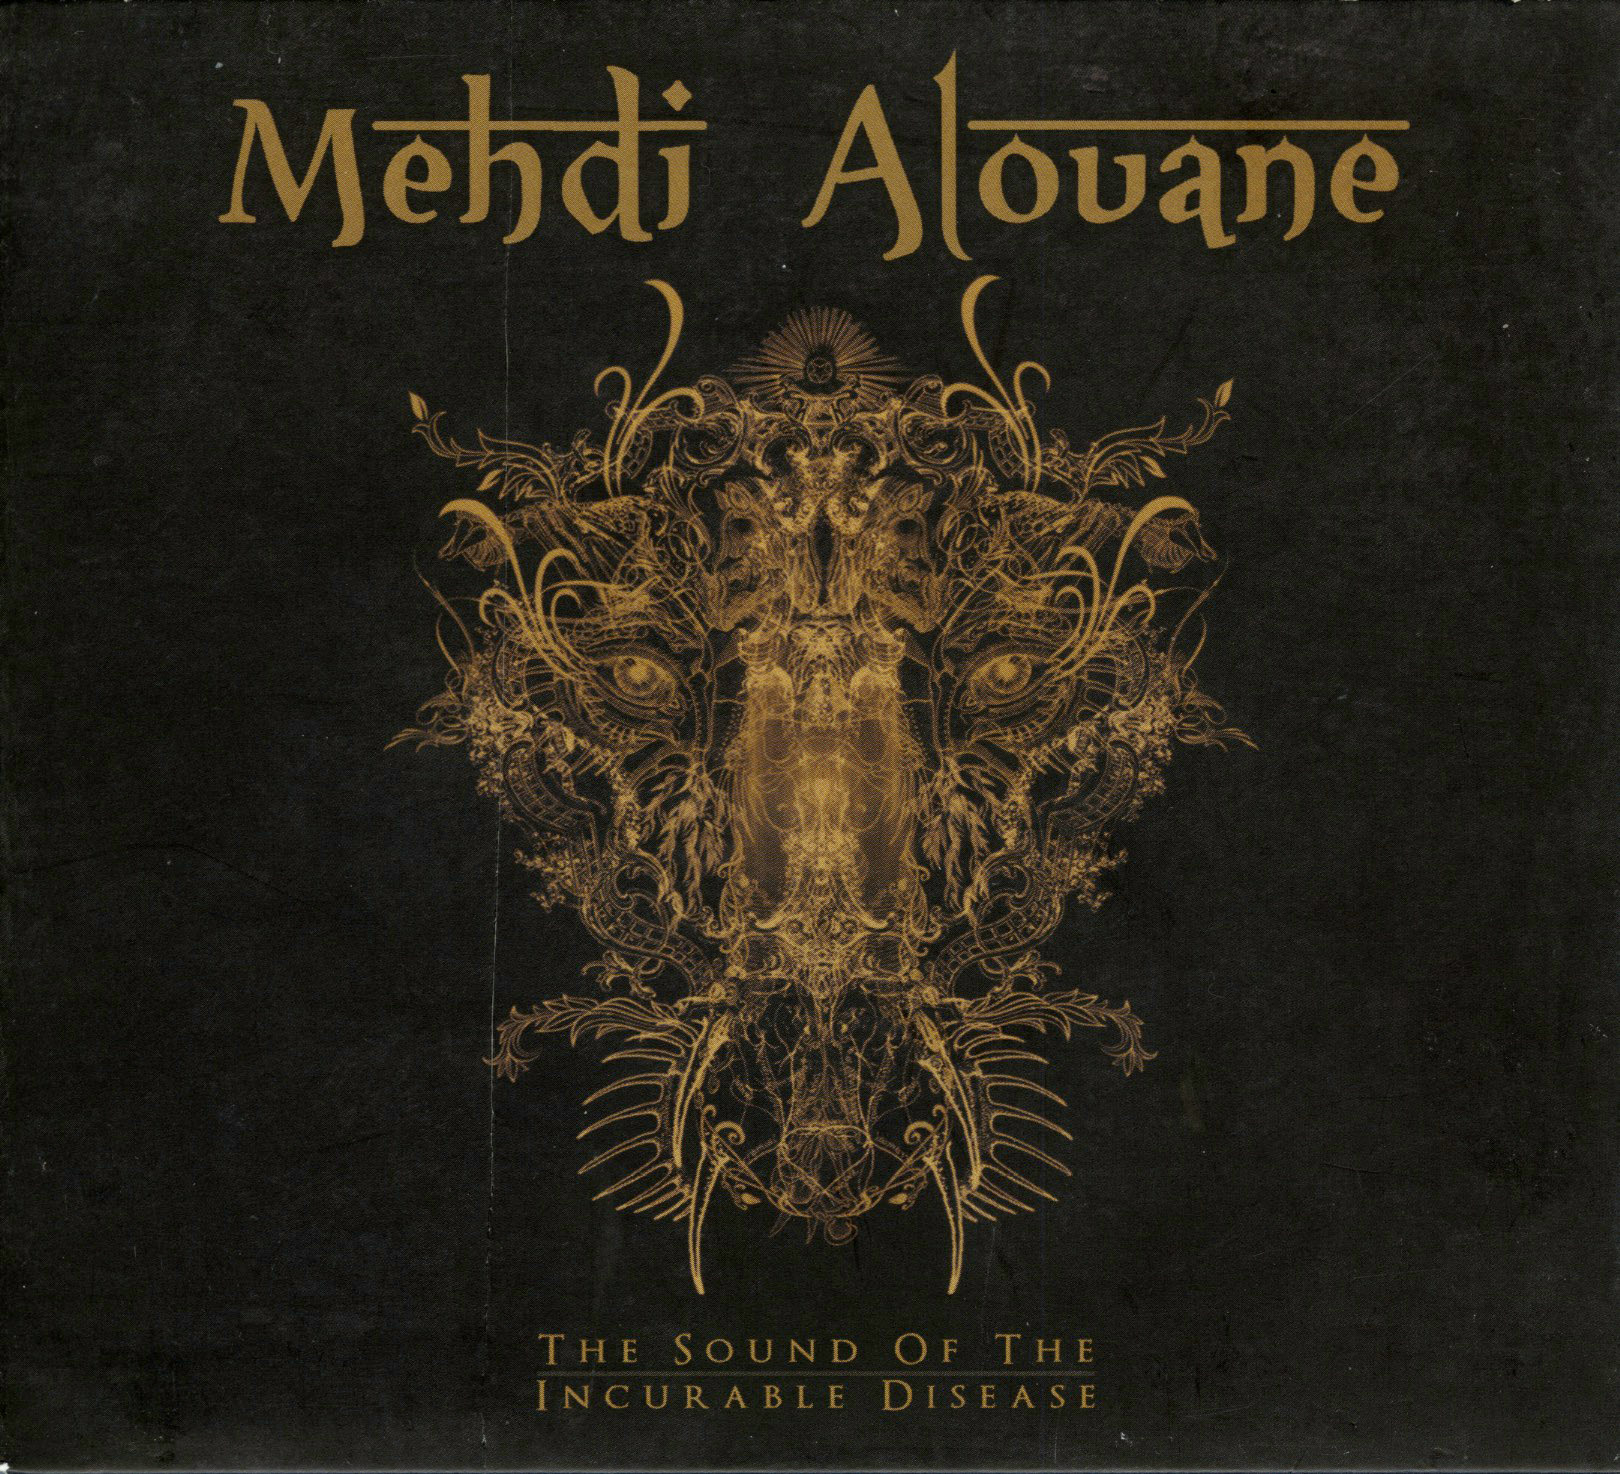 Mehdi Alouane: The Sound of the Incurable Disease